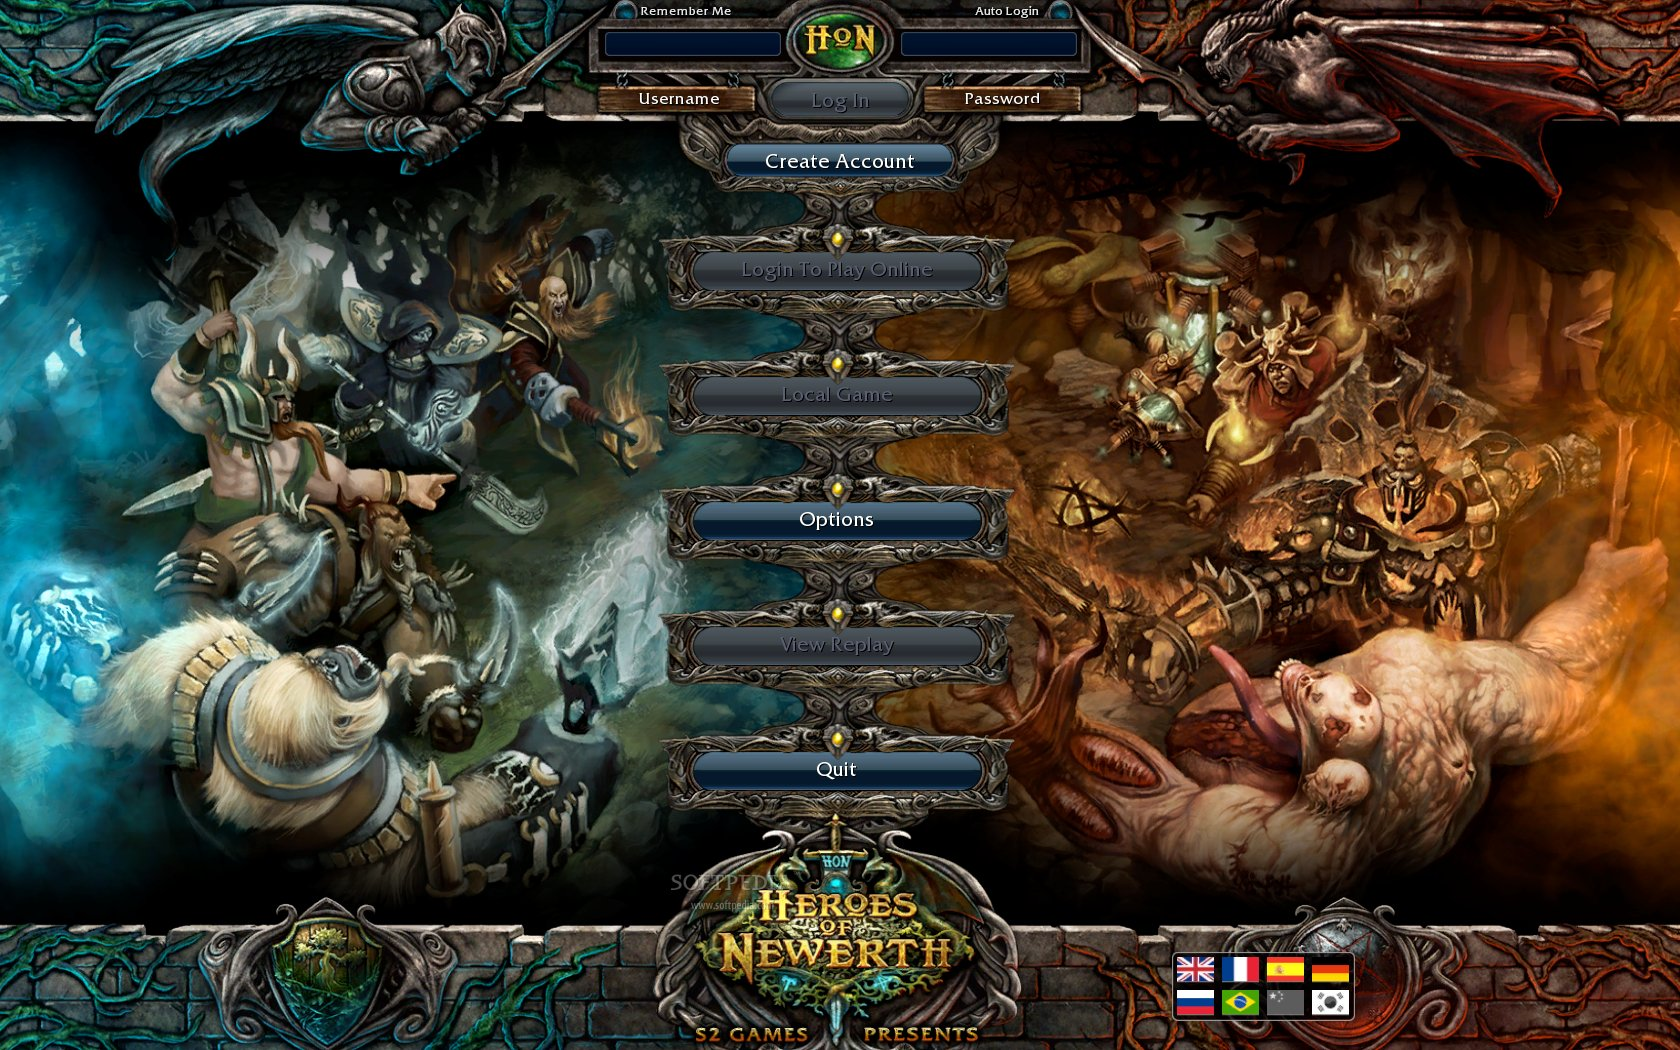 Heroes of Newerth screenshot 10